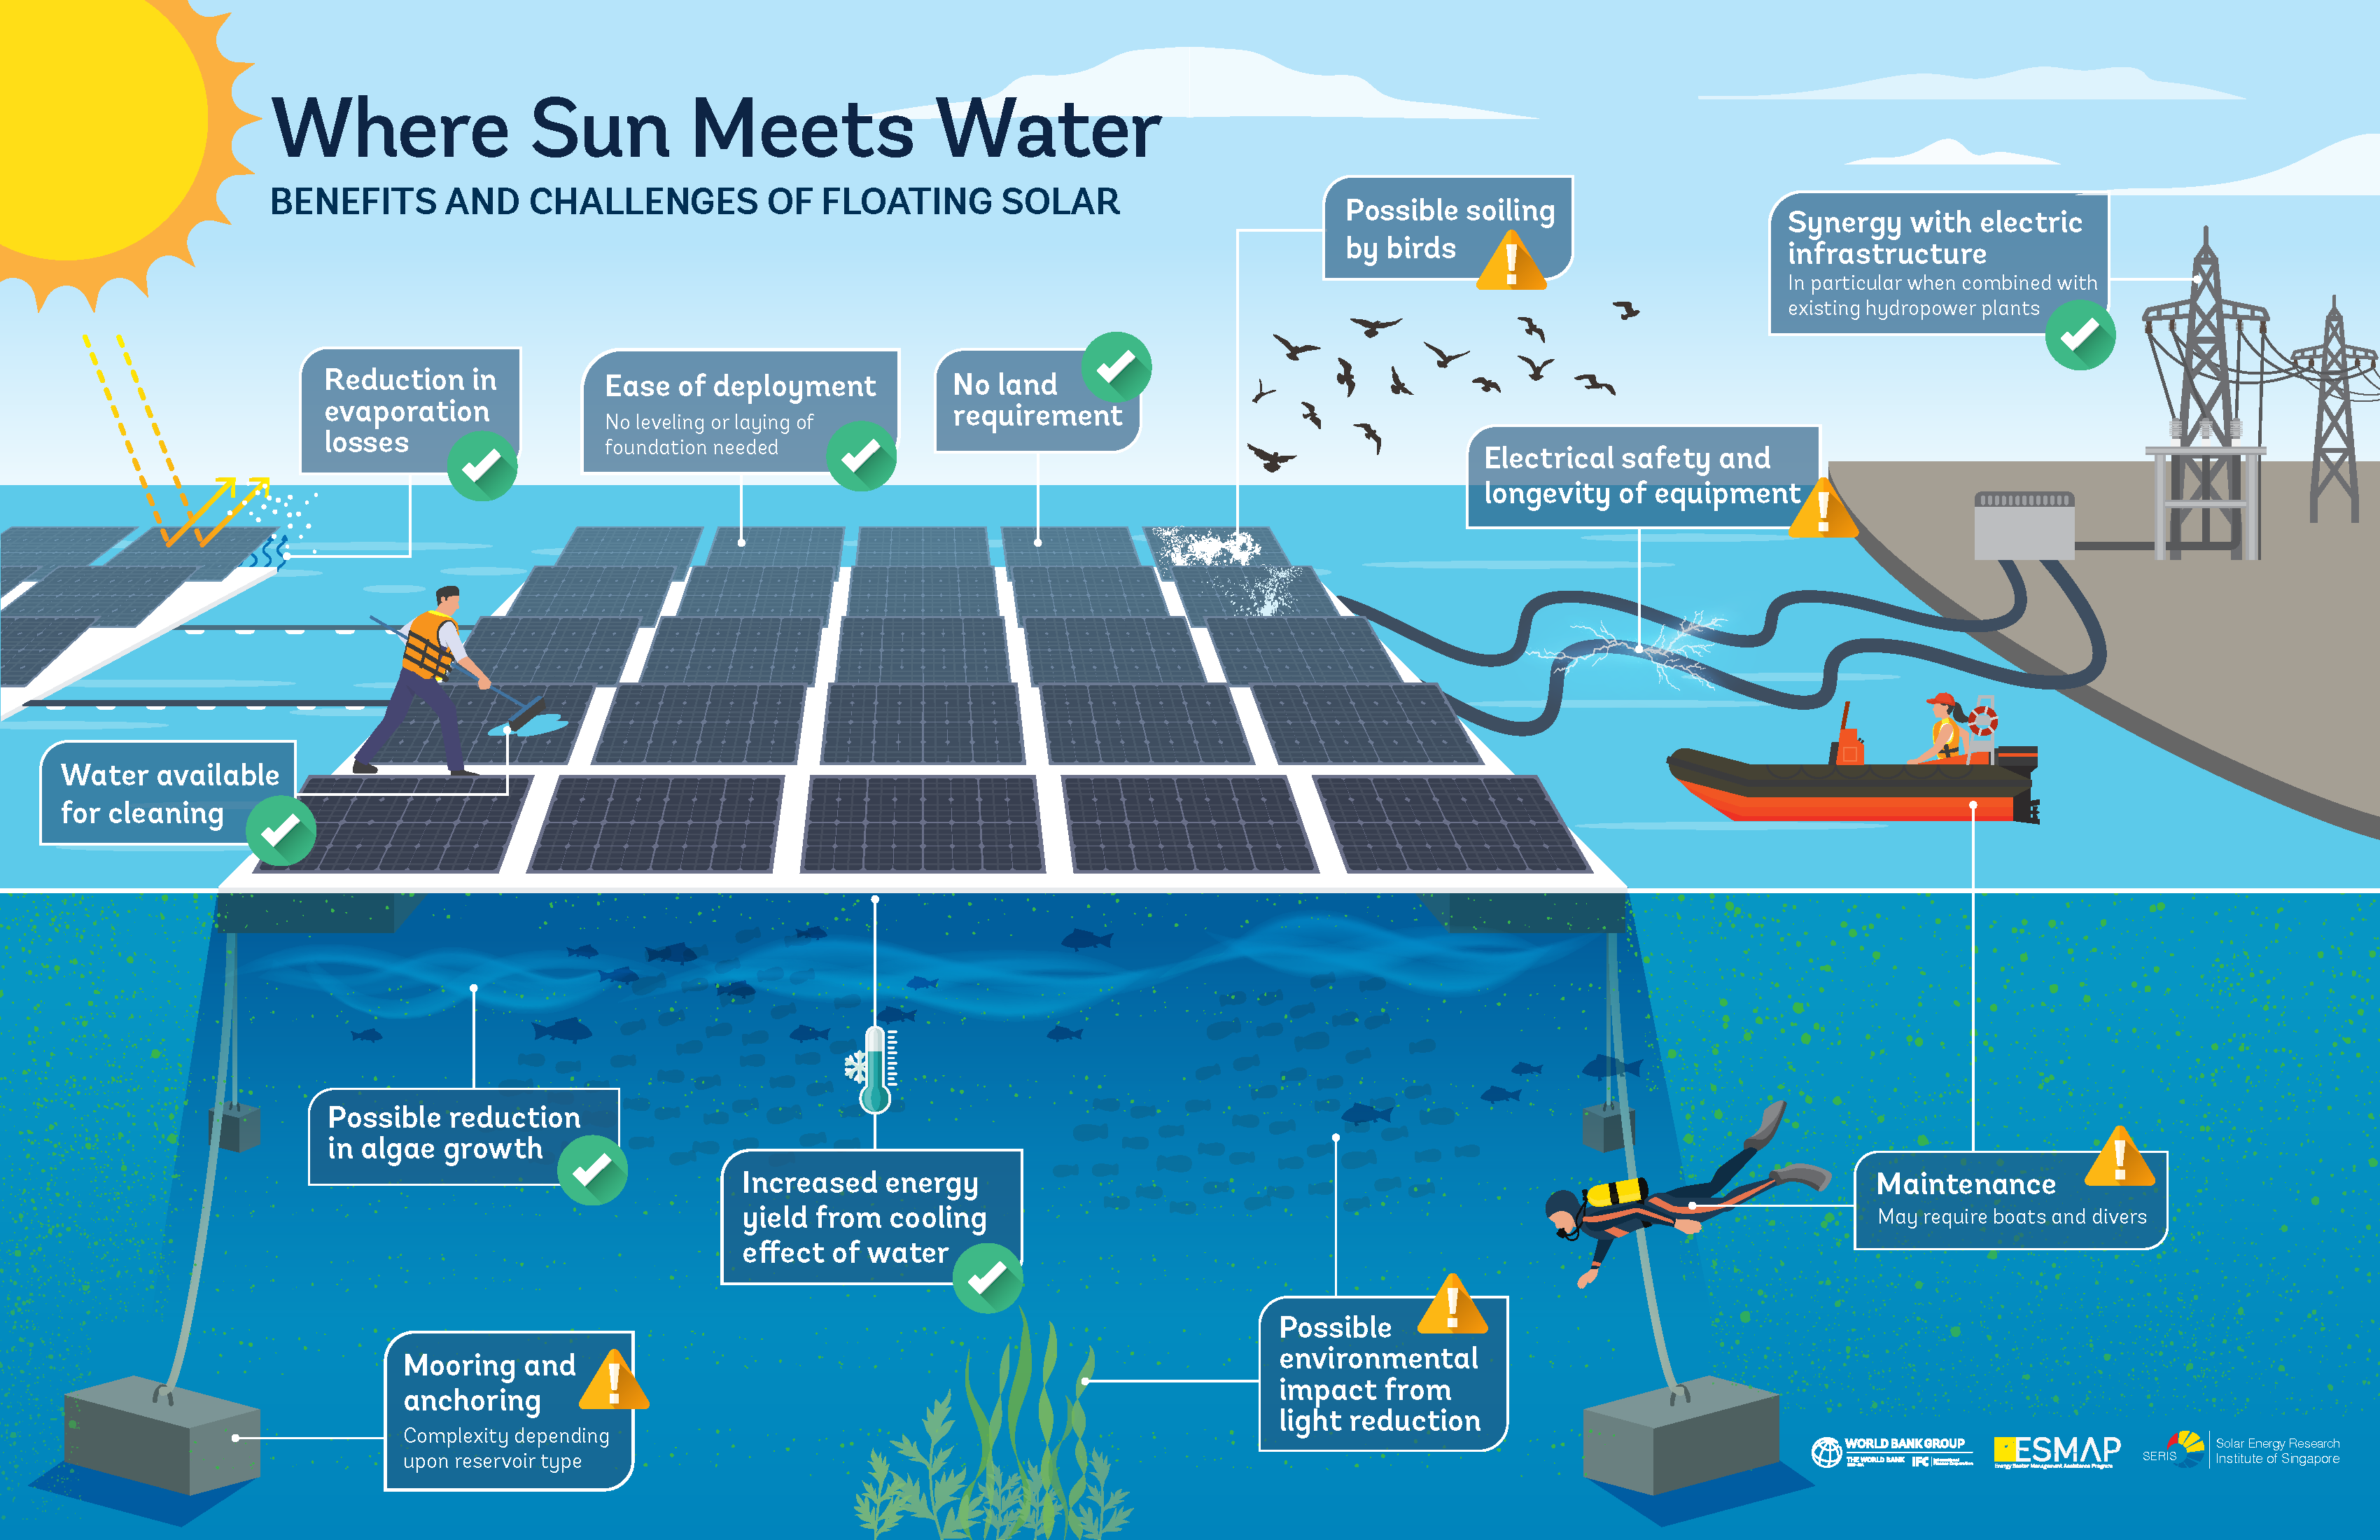 Where Sun Meets Water: Floating Solar Market Report | ESMAP